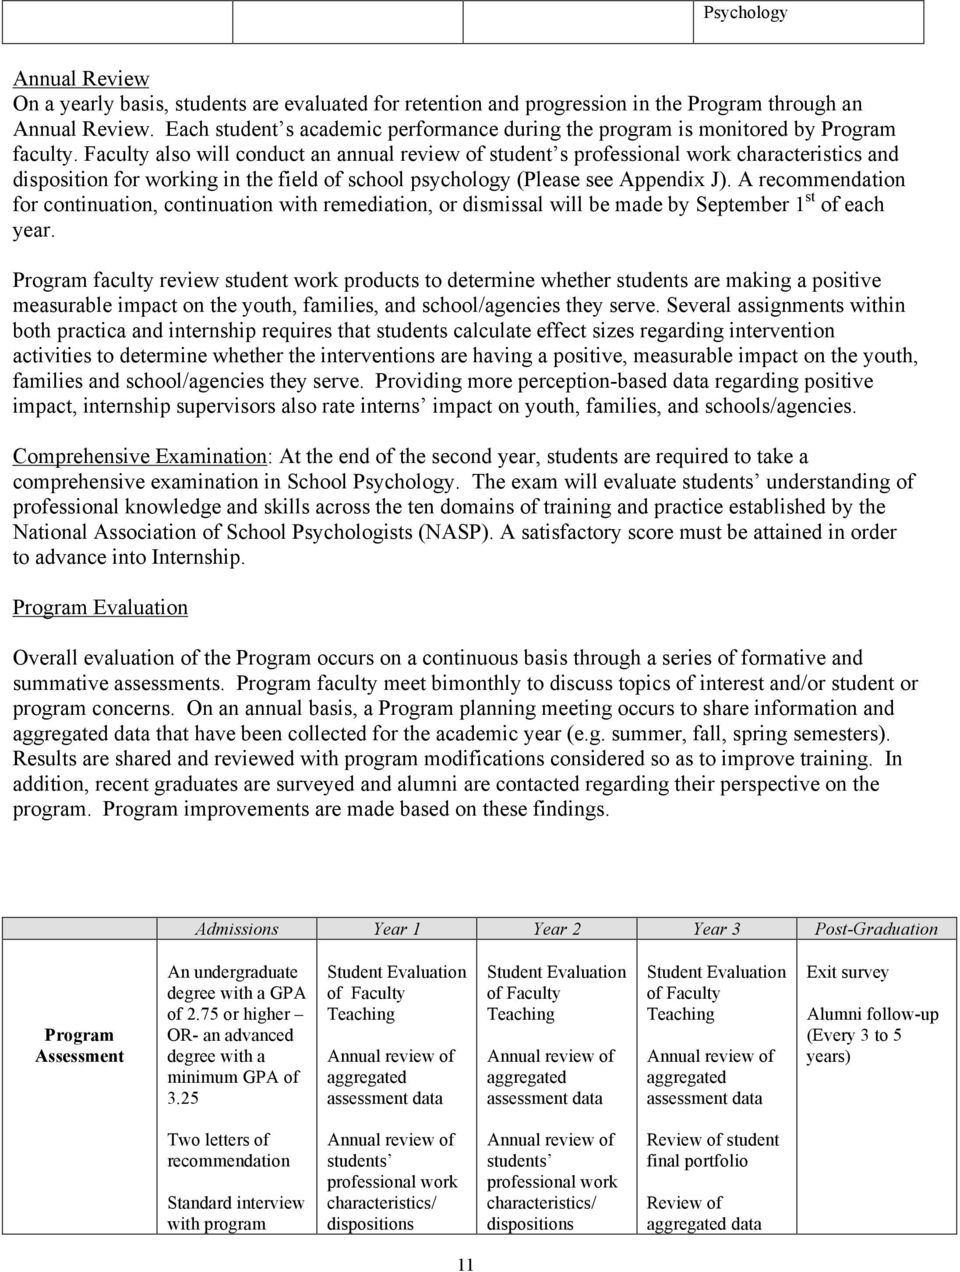 Faculty also will conduct an annual review of student s professional work characteristics and disposition for working in the field of school psychology (Please see Appendix J).